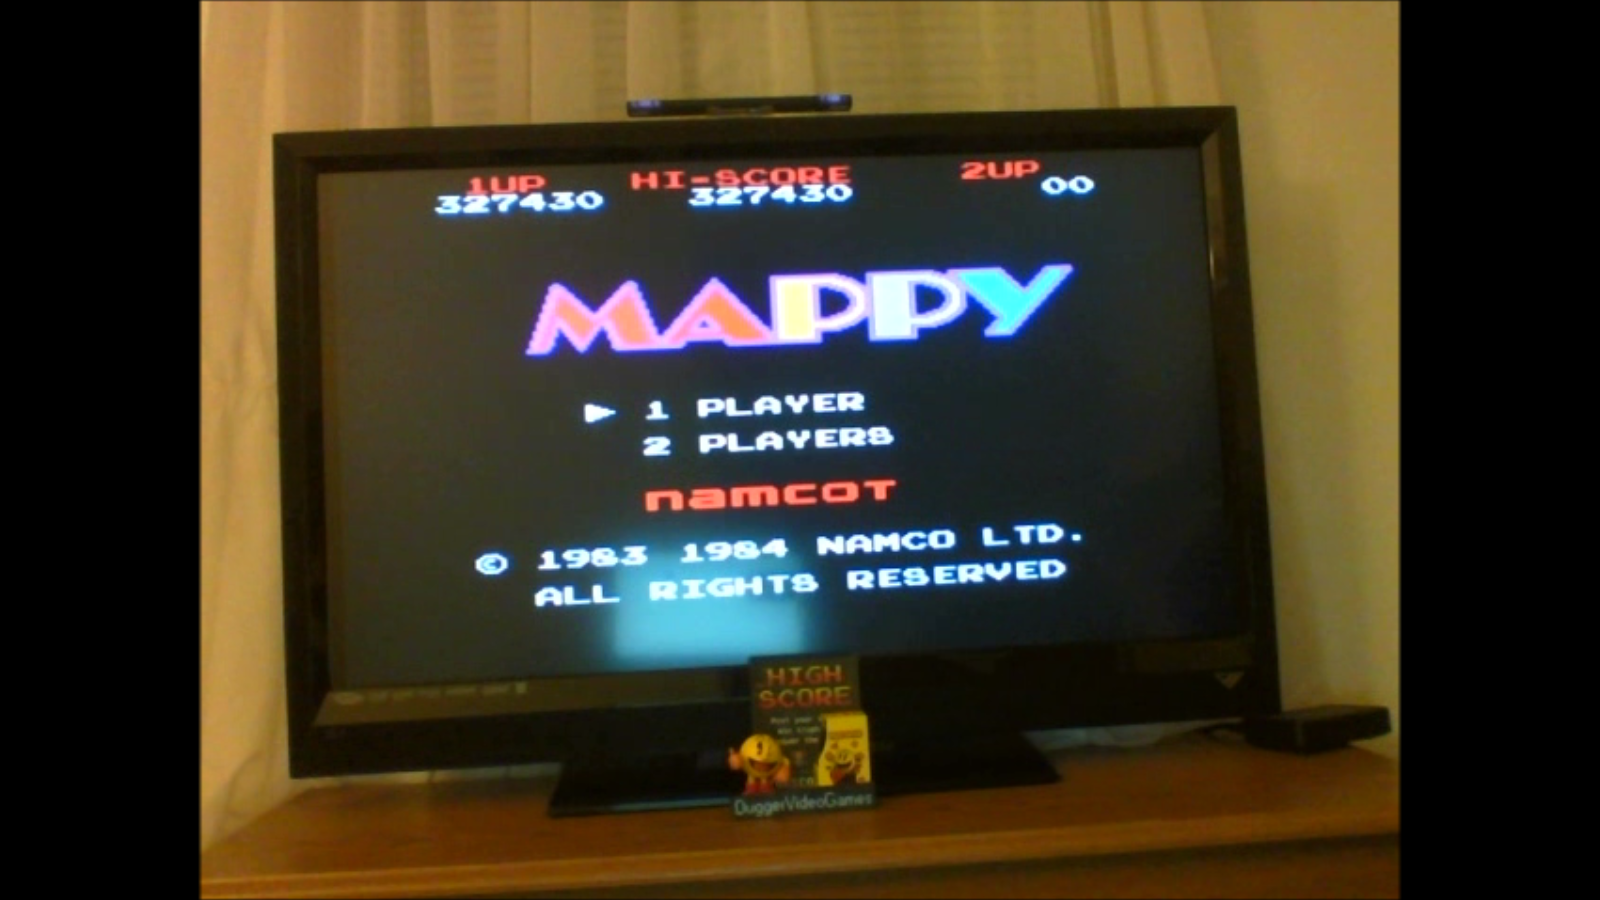 DuggerVideoGames: Mappy (NES/Famicom Emulated) 327,430 points on 2017-01-04 04:32:40